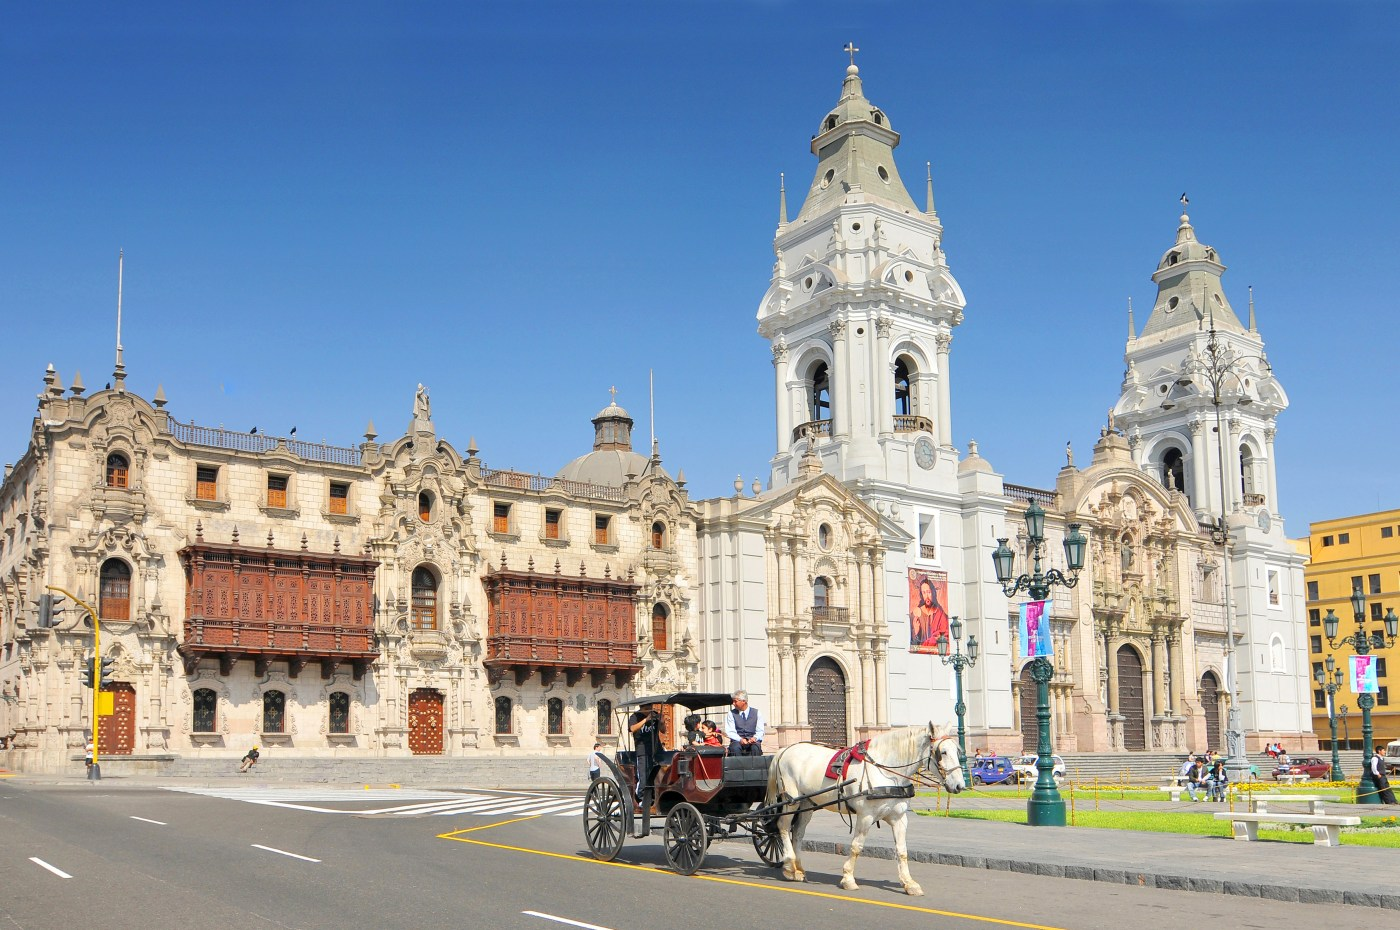 The Basilica Cathedral of Lima in Peru.